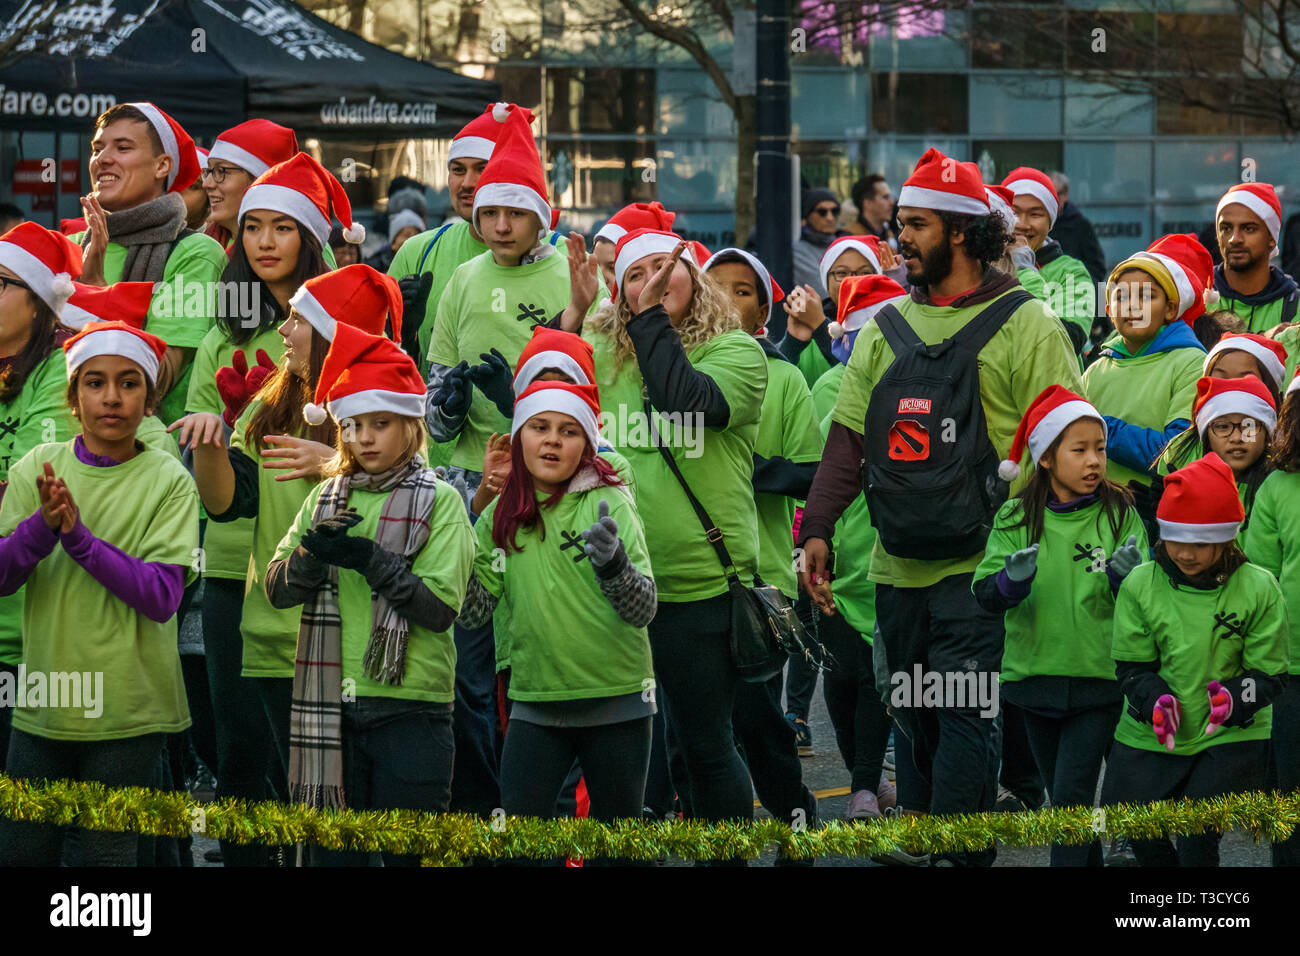 Vancouver Christmas Parade.Vancouver Canada December 2 2018 People Participating